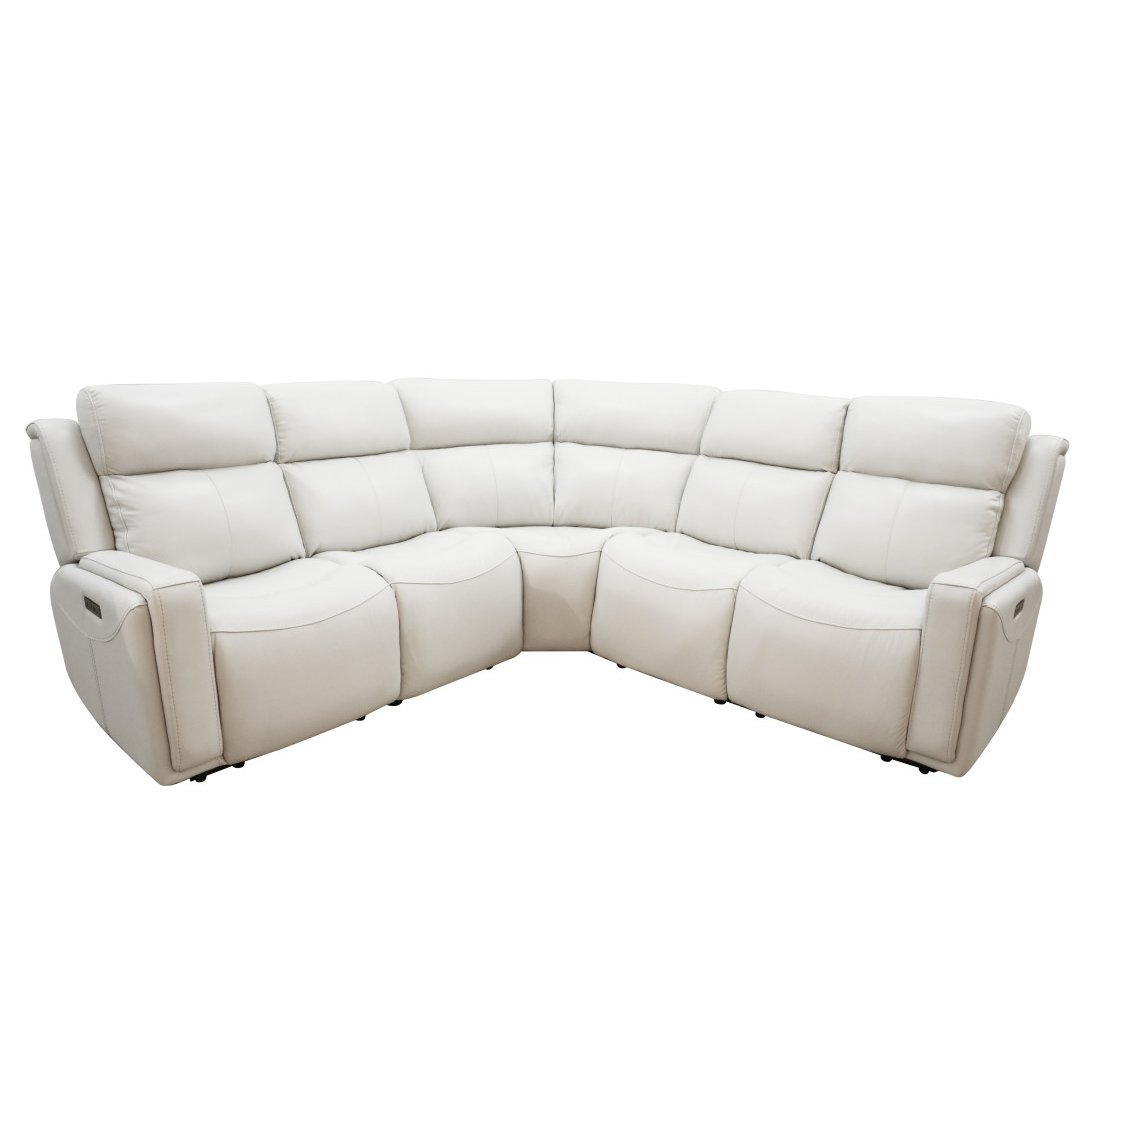 Ice White Leather Match Power Reclining Sectional Sofa Stratus Rc Willey Furniture Store